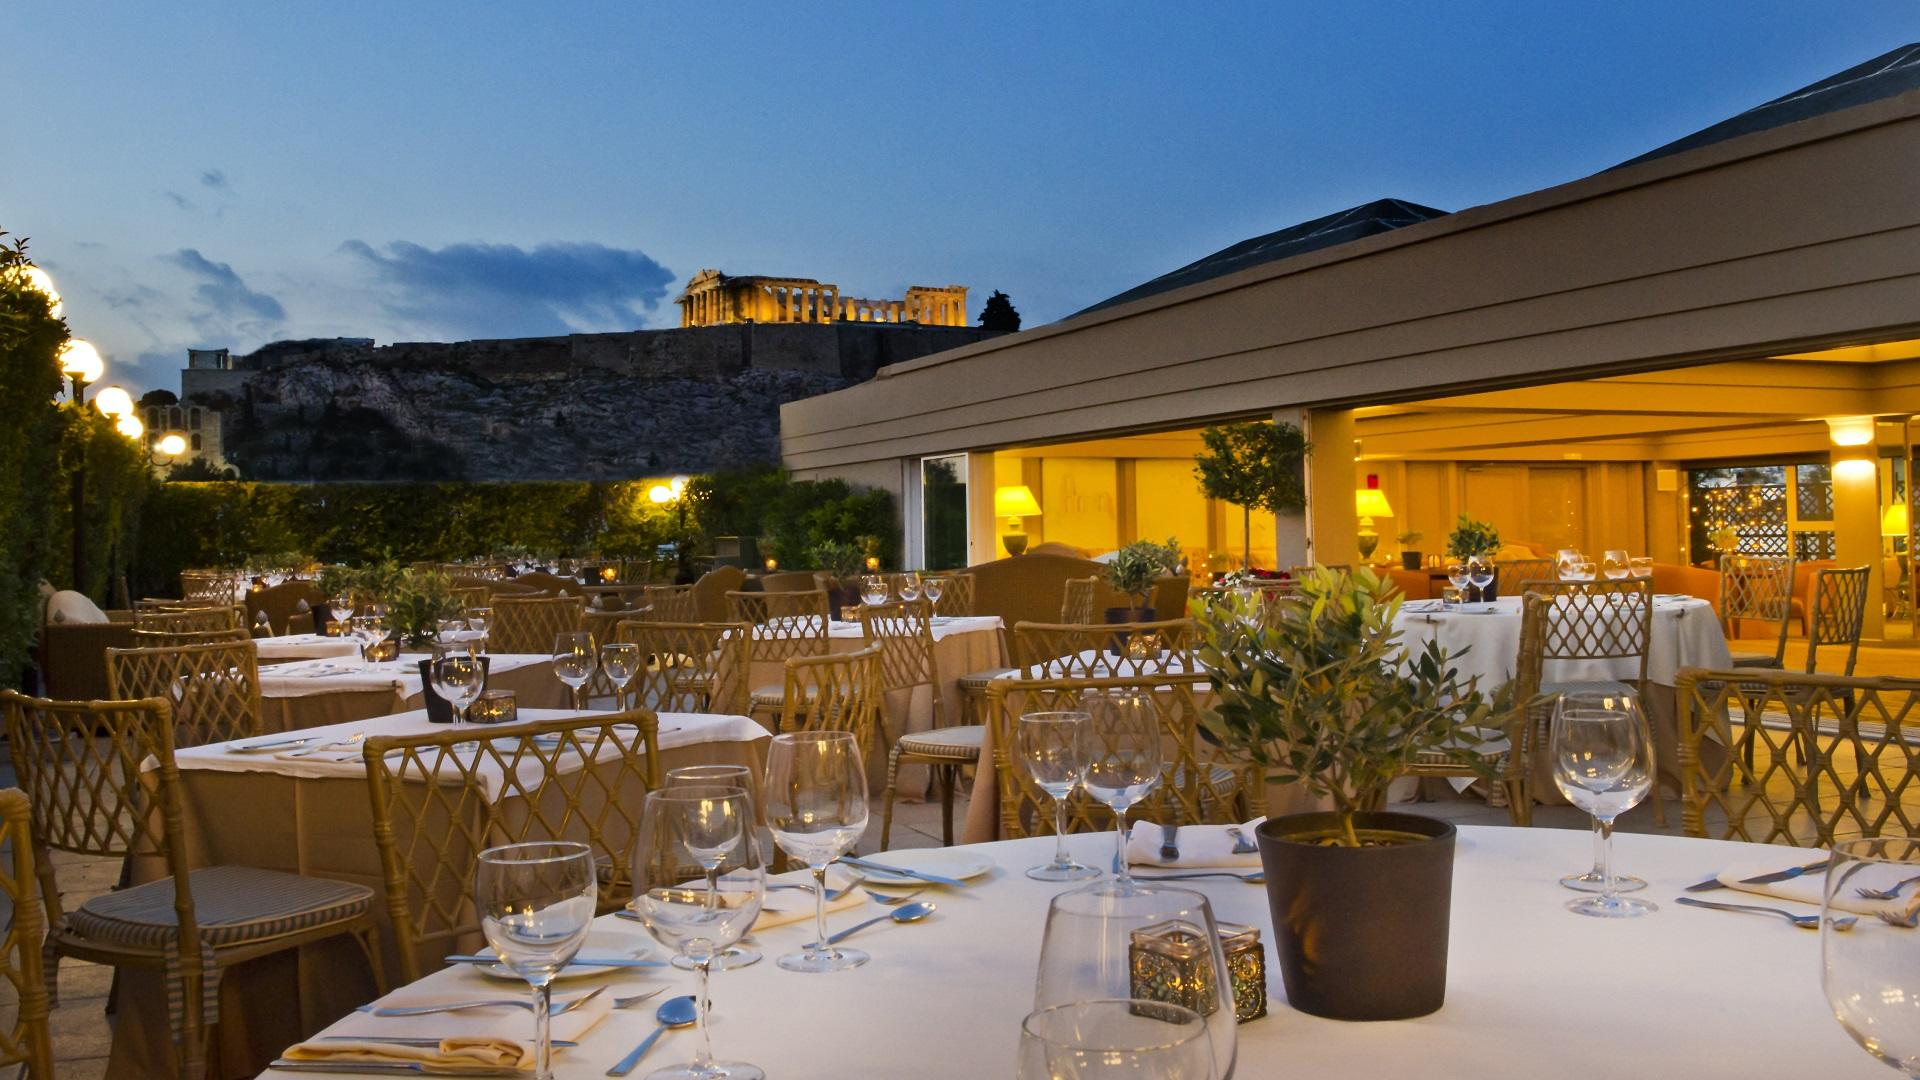 Fine Dining Experience at Secret Roof Garden restaurant